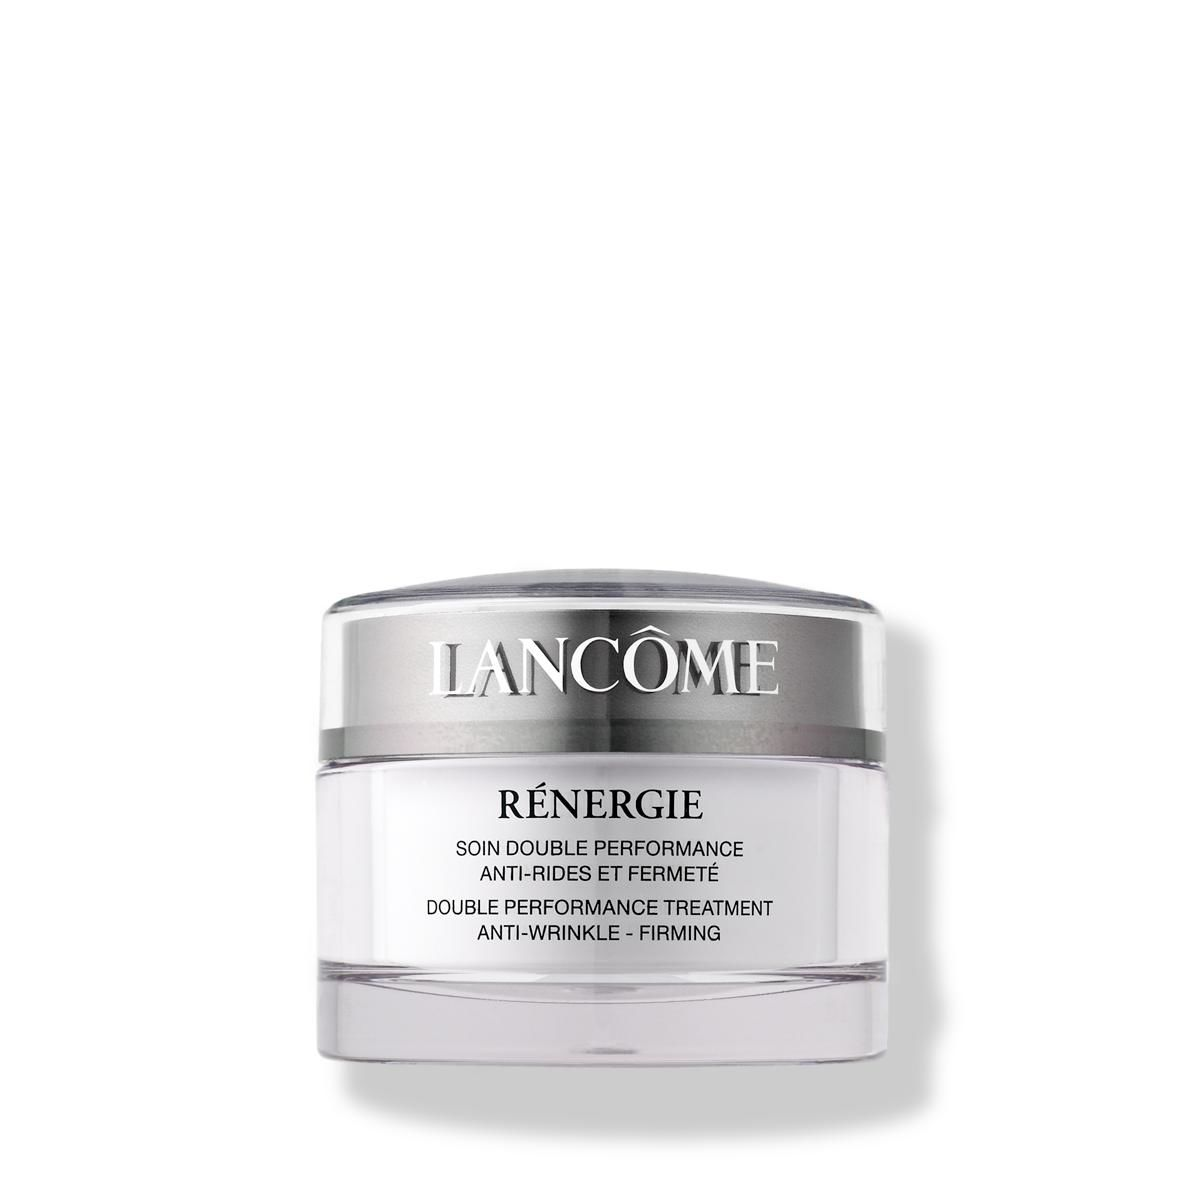 Lancôme Renergie Cream 1.7 oz.